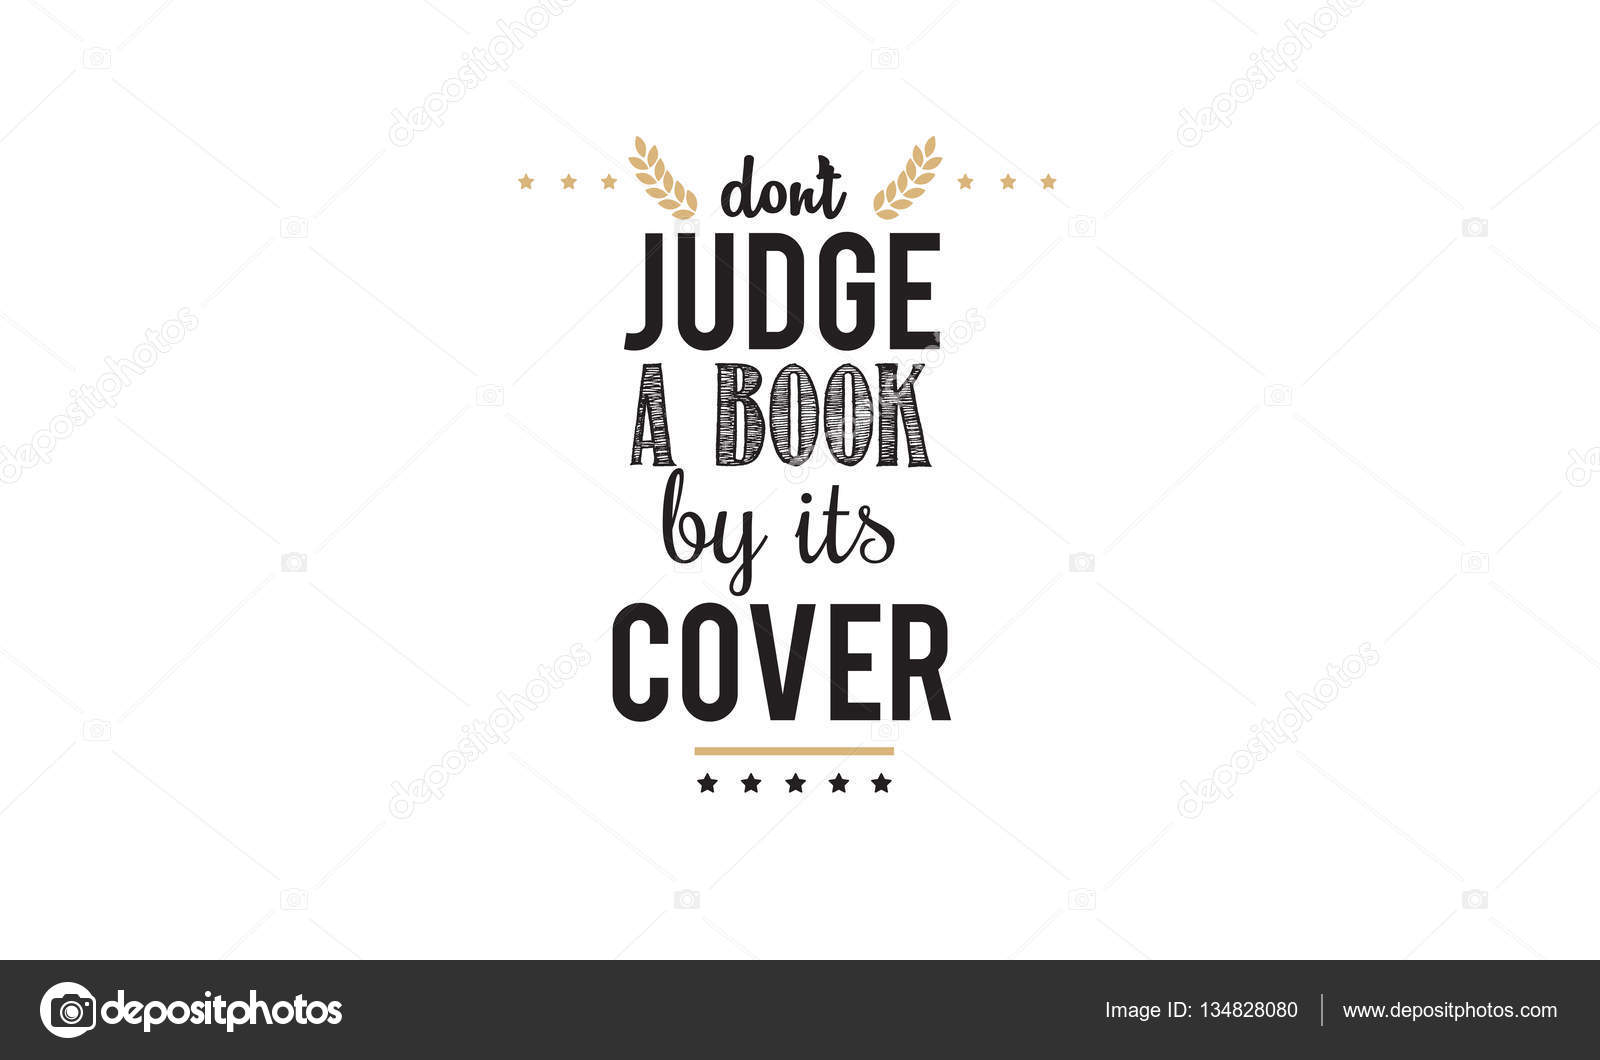 Quotes about judging a book by its cover. Not Being